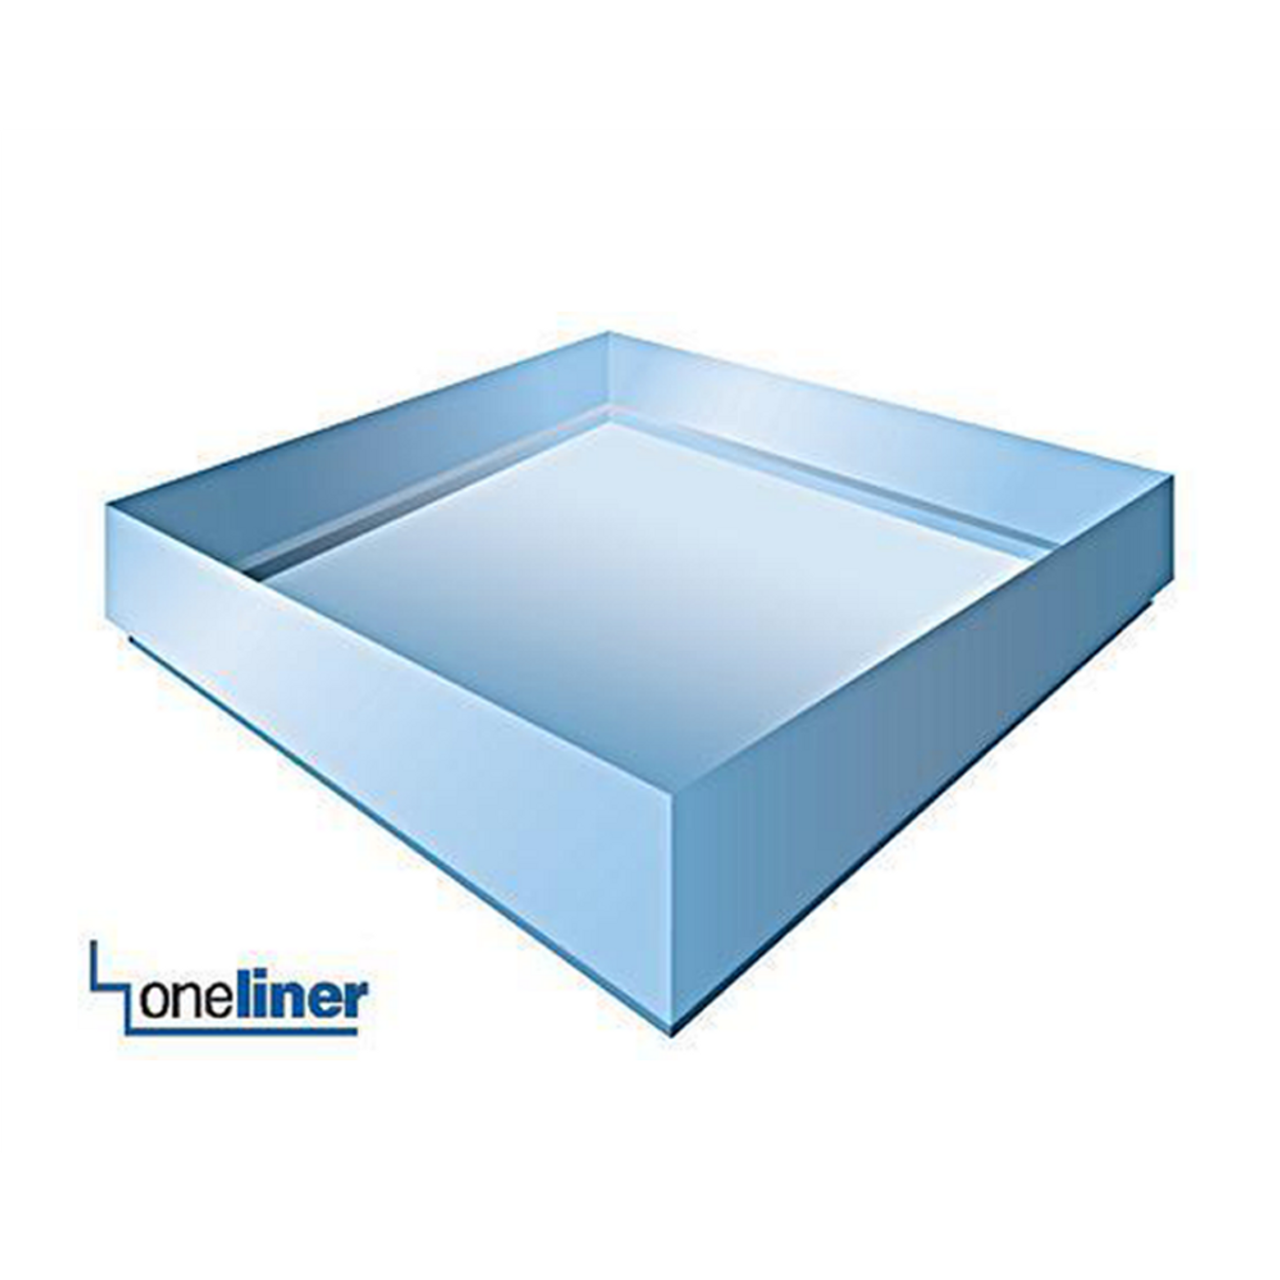 Gentil Square Oneliner Structured Waterproof Shower Pan Liner The One And Only